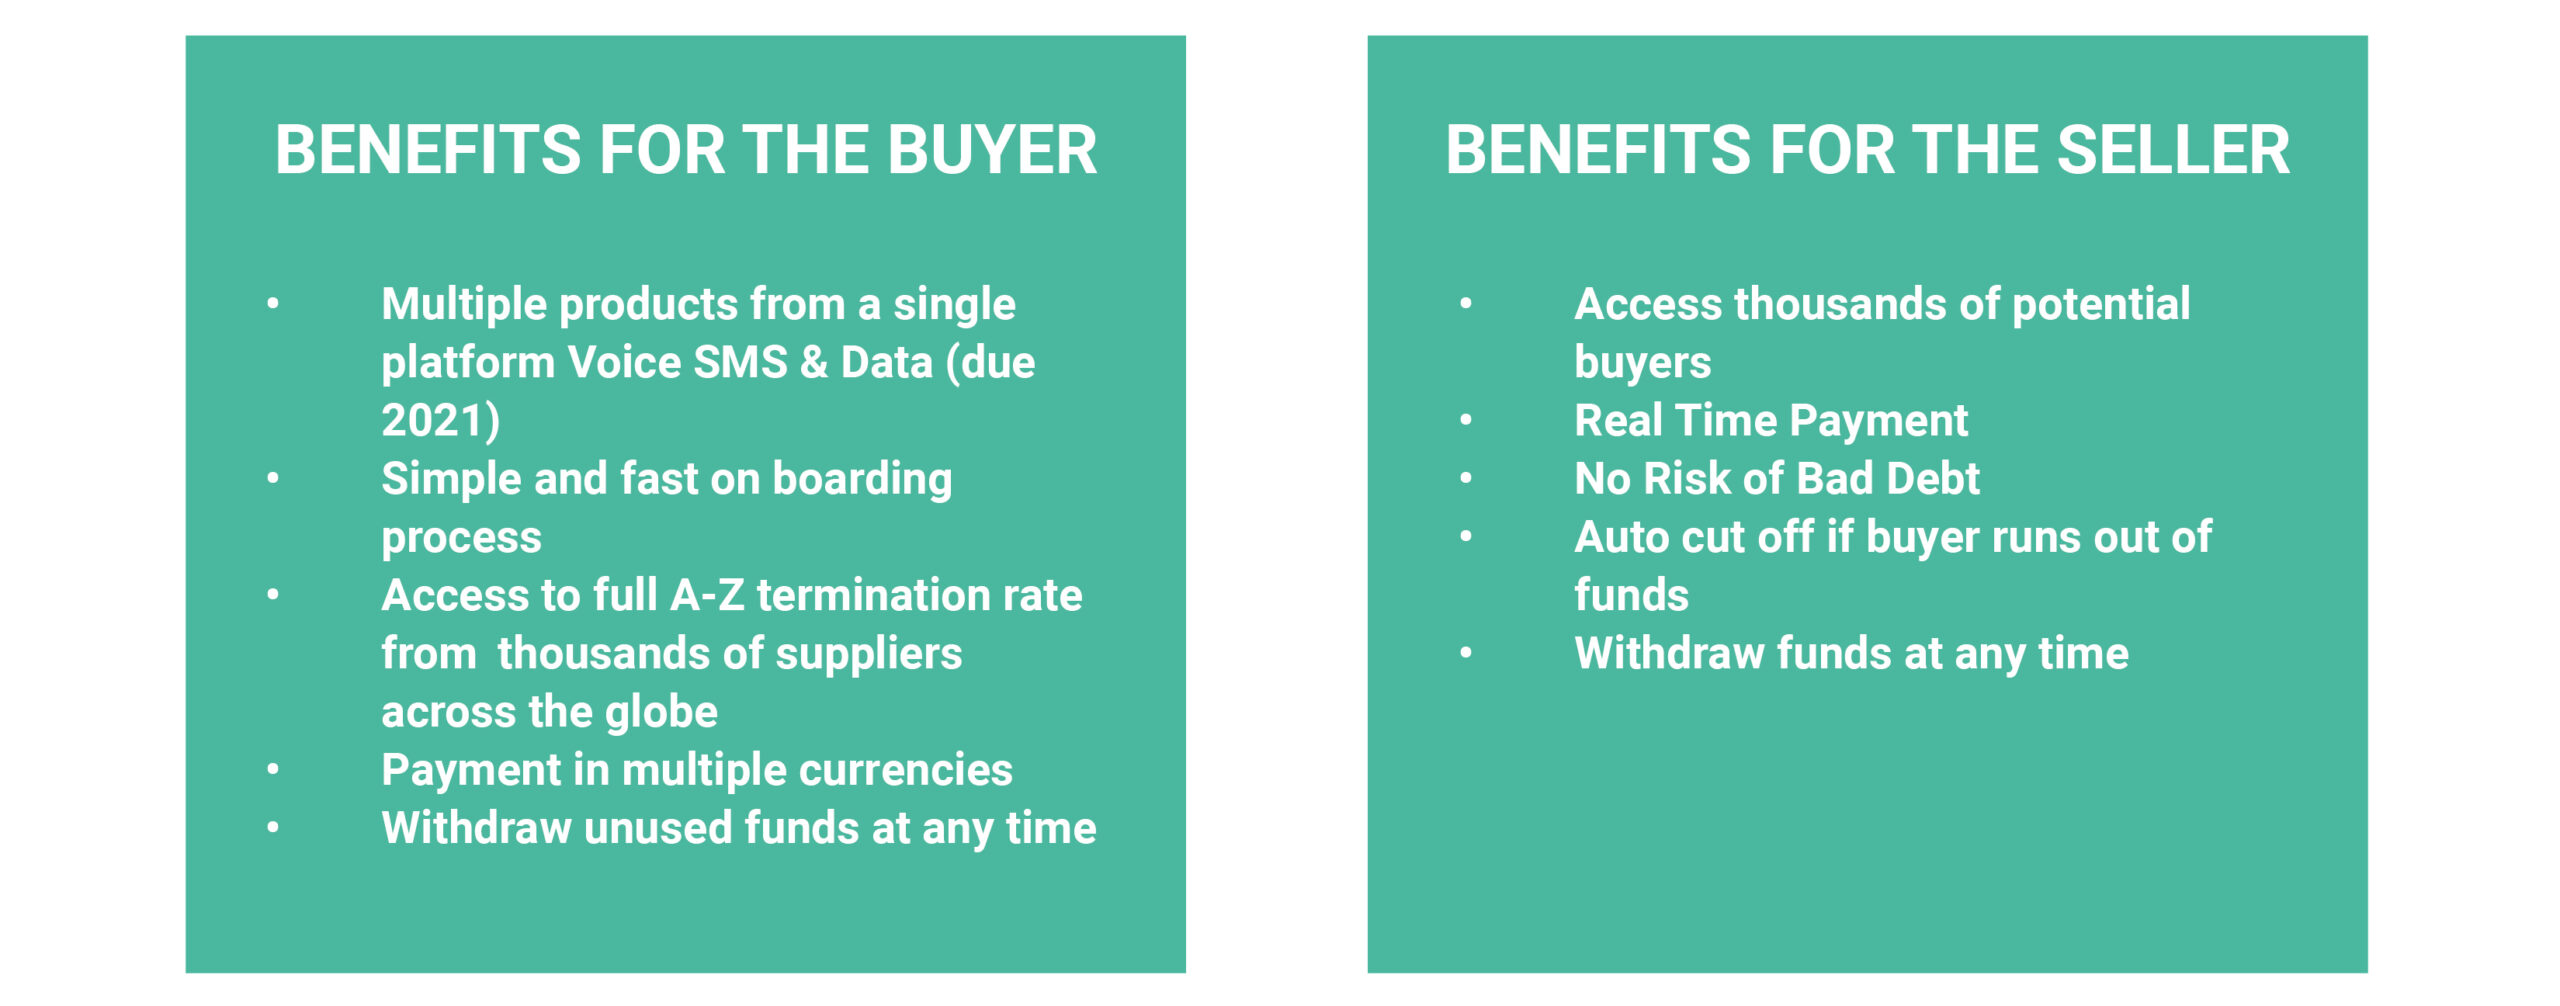 Global Exchange Benefits for the Buyer and Seller | RTX Routetrader